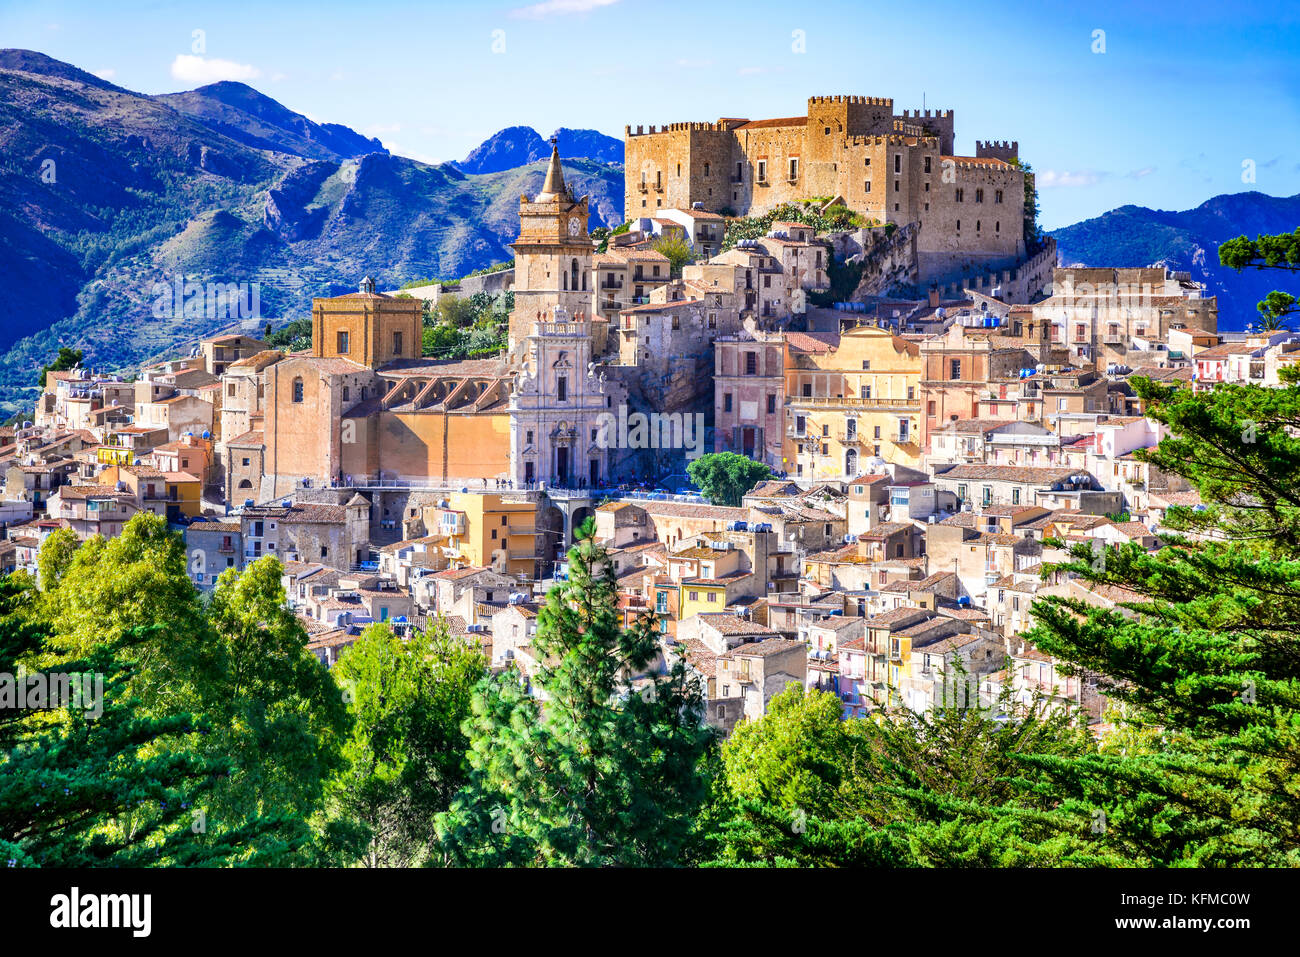 Caccamo, Sicily. Medieval italian city with the Norman Castle in Sicily mountains, Italy. - Stock Image